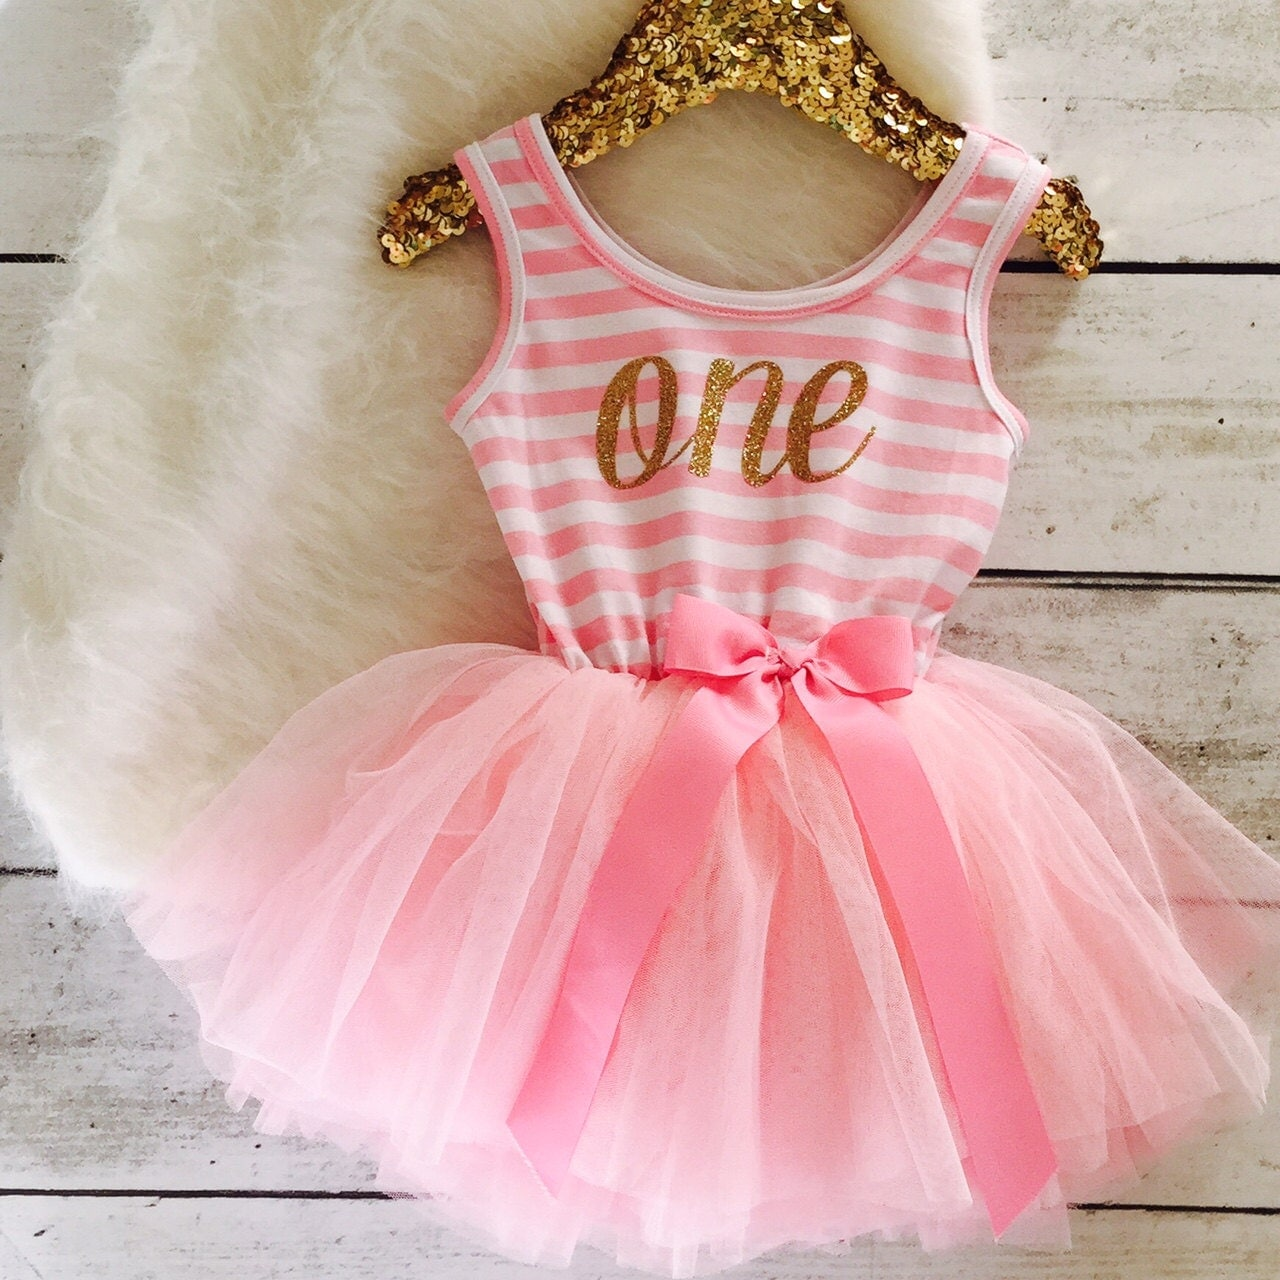 Birthday Party Outfit: Pink And Gold First Birthday Outfit Tutu Dress Gold By